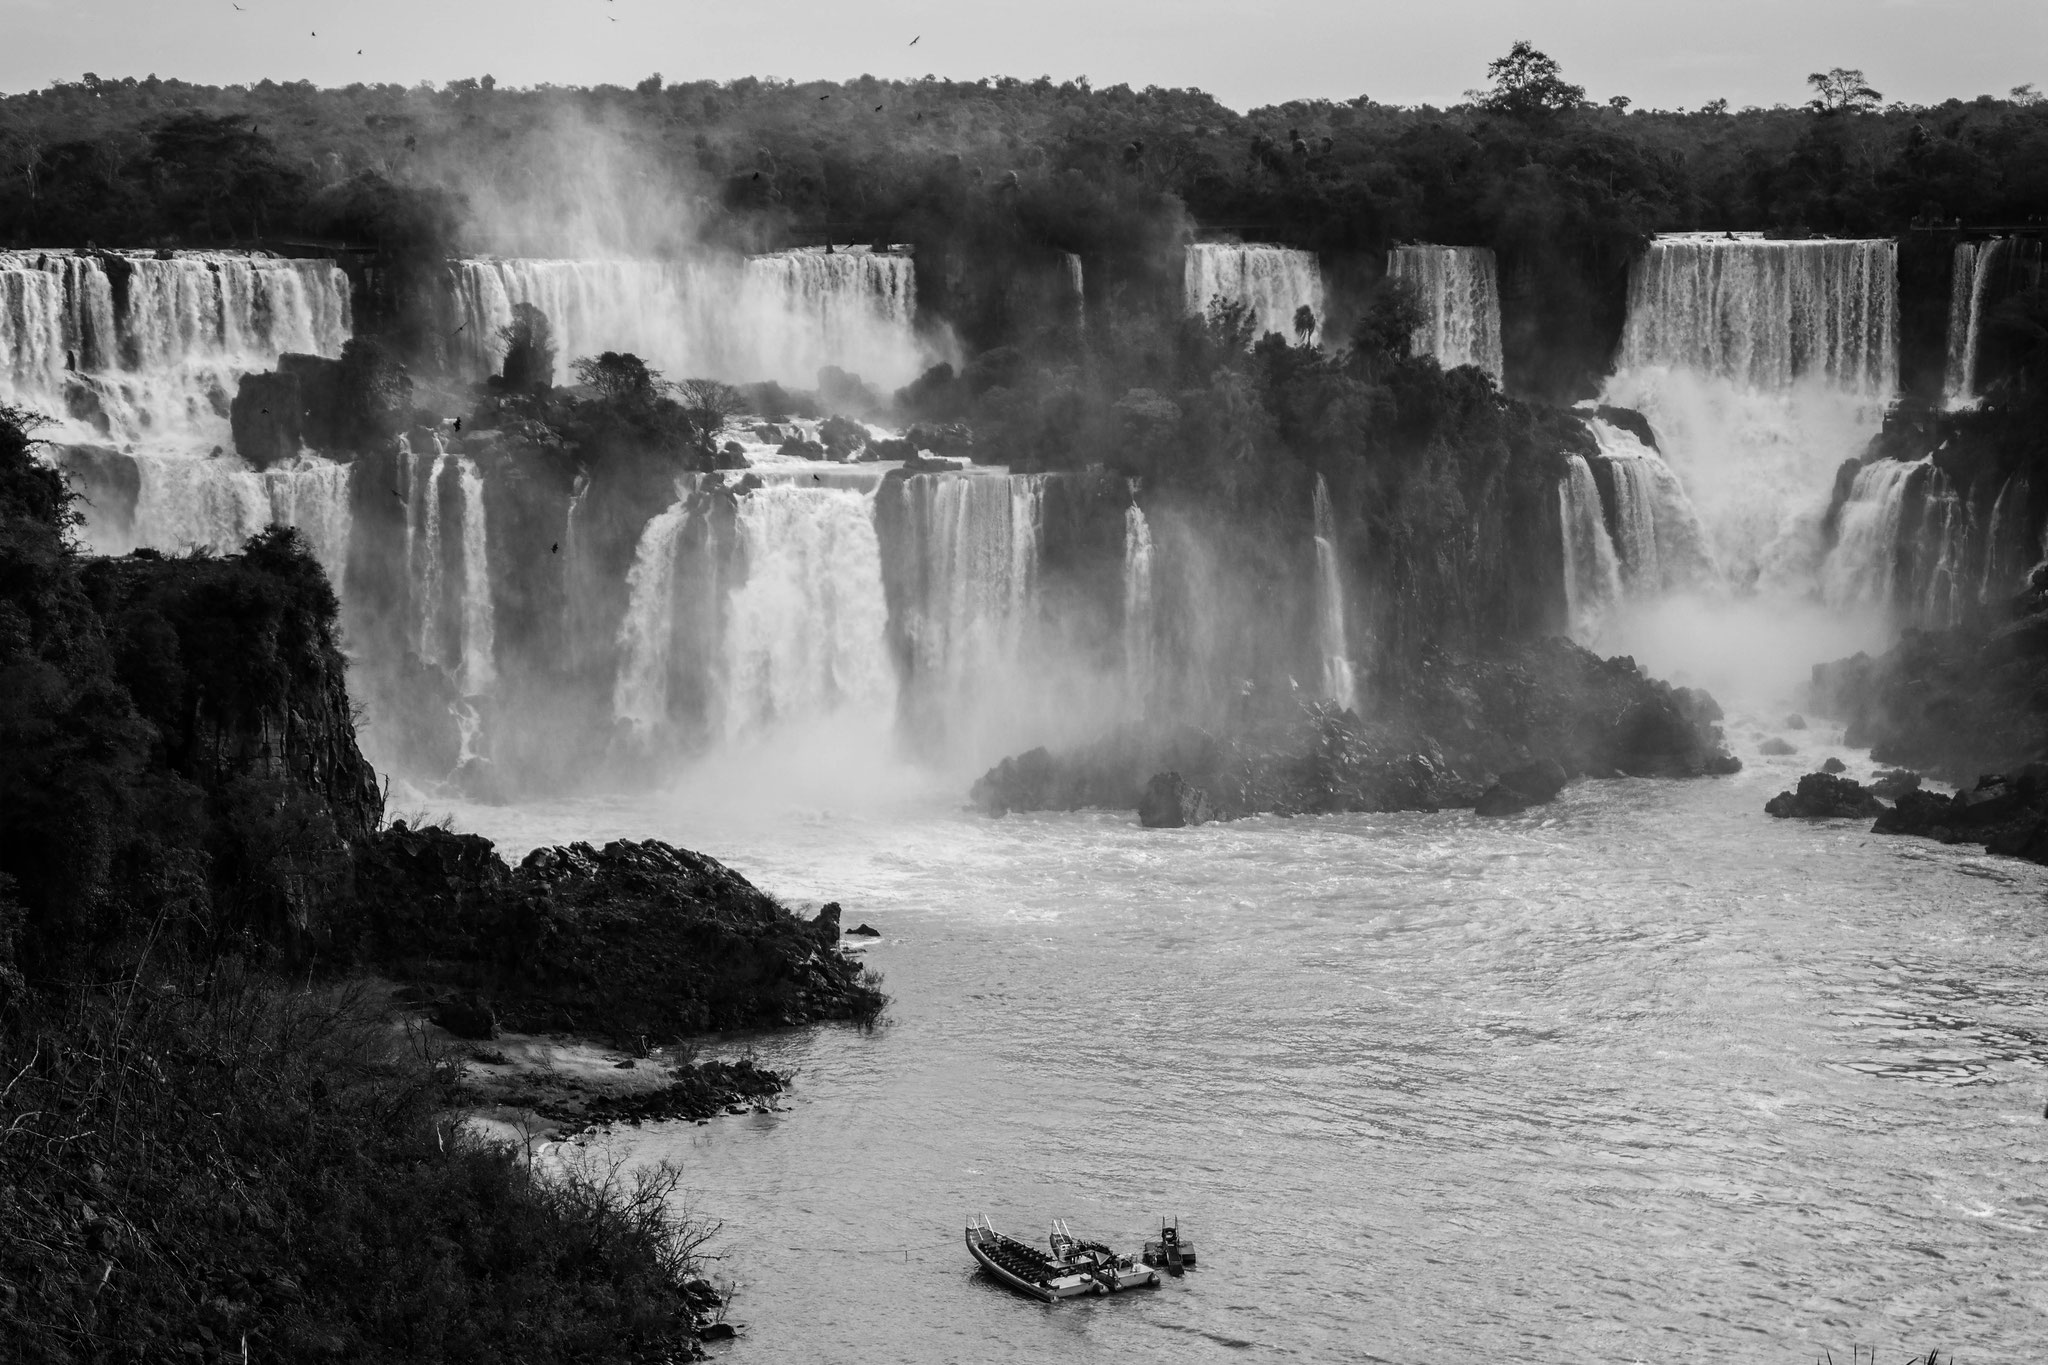 Boats in front of the waterfalls in Iguazú, boat tour possible.